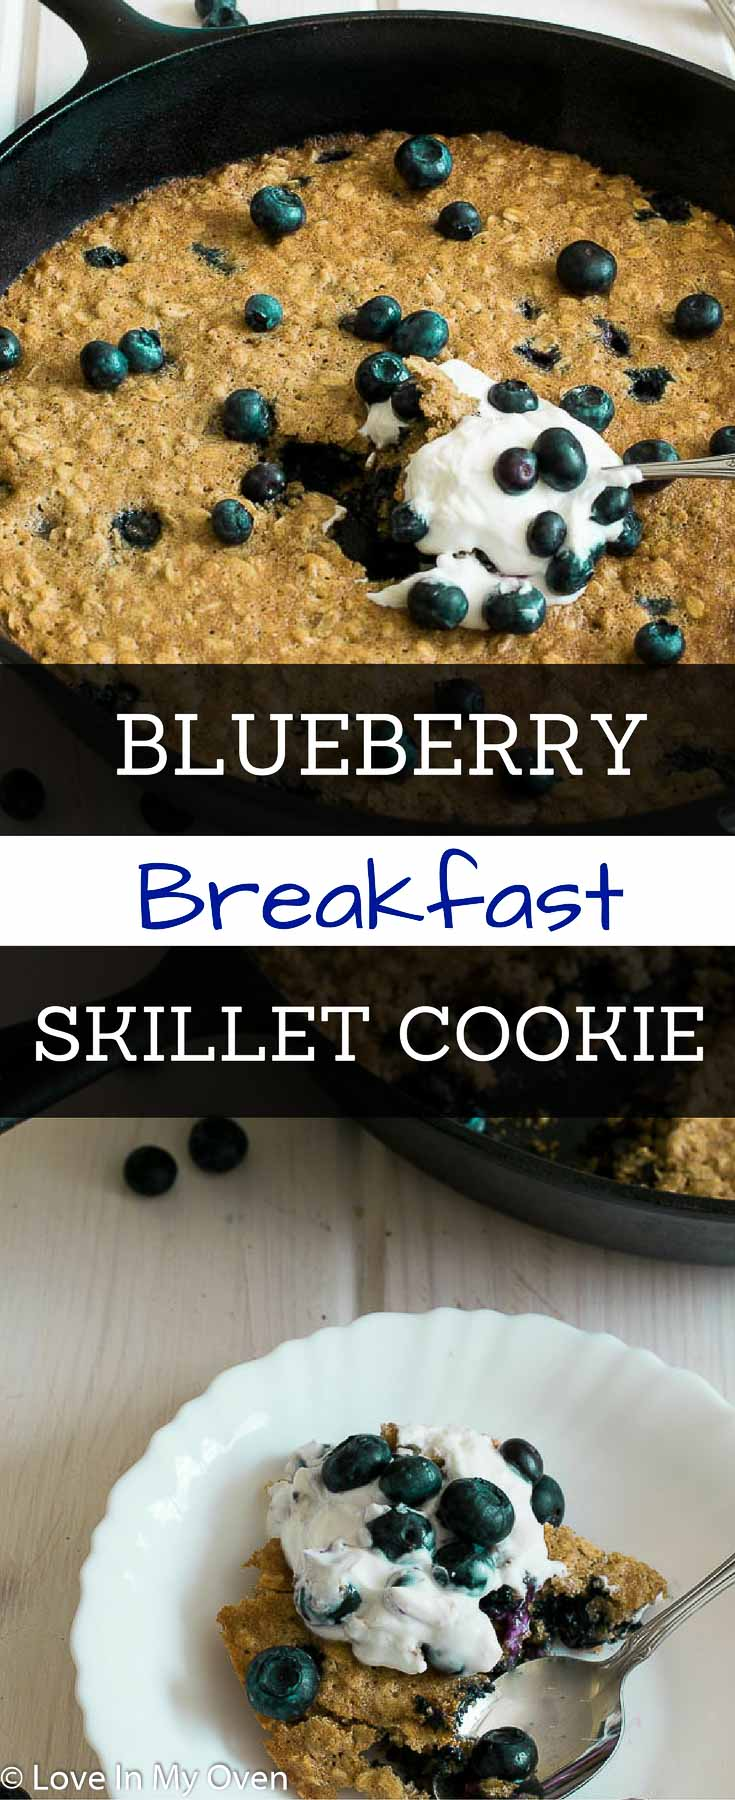 Feed your inner kid with this giant skillet cookie for breakfast. Free of refined sugars and unhealthy fats, this skillet cookie is almost too good to be true!